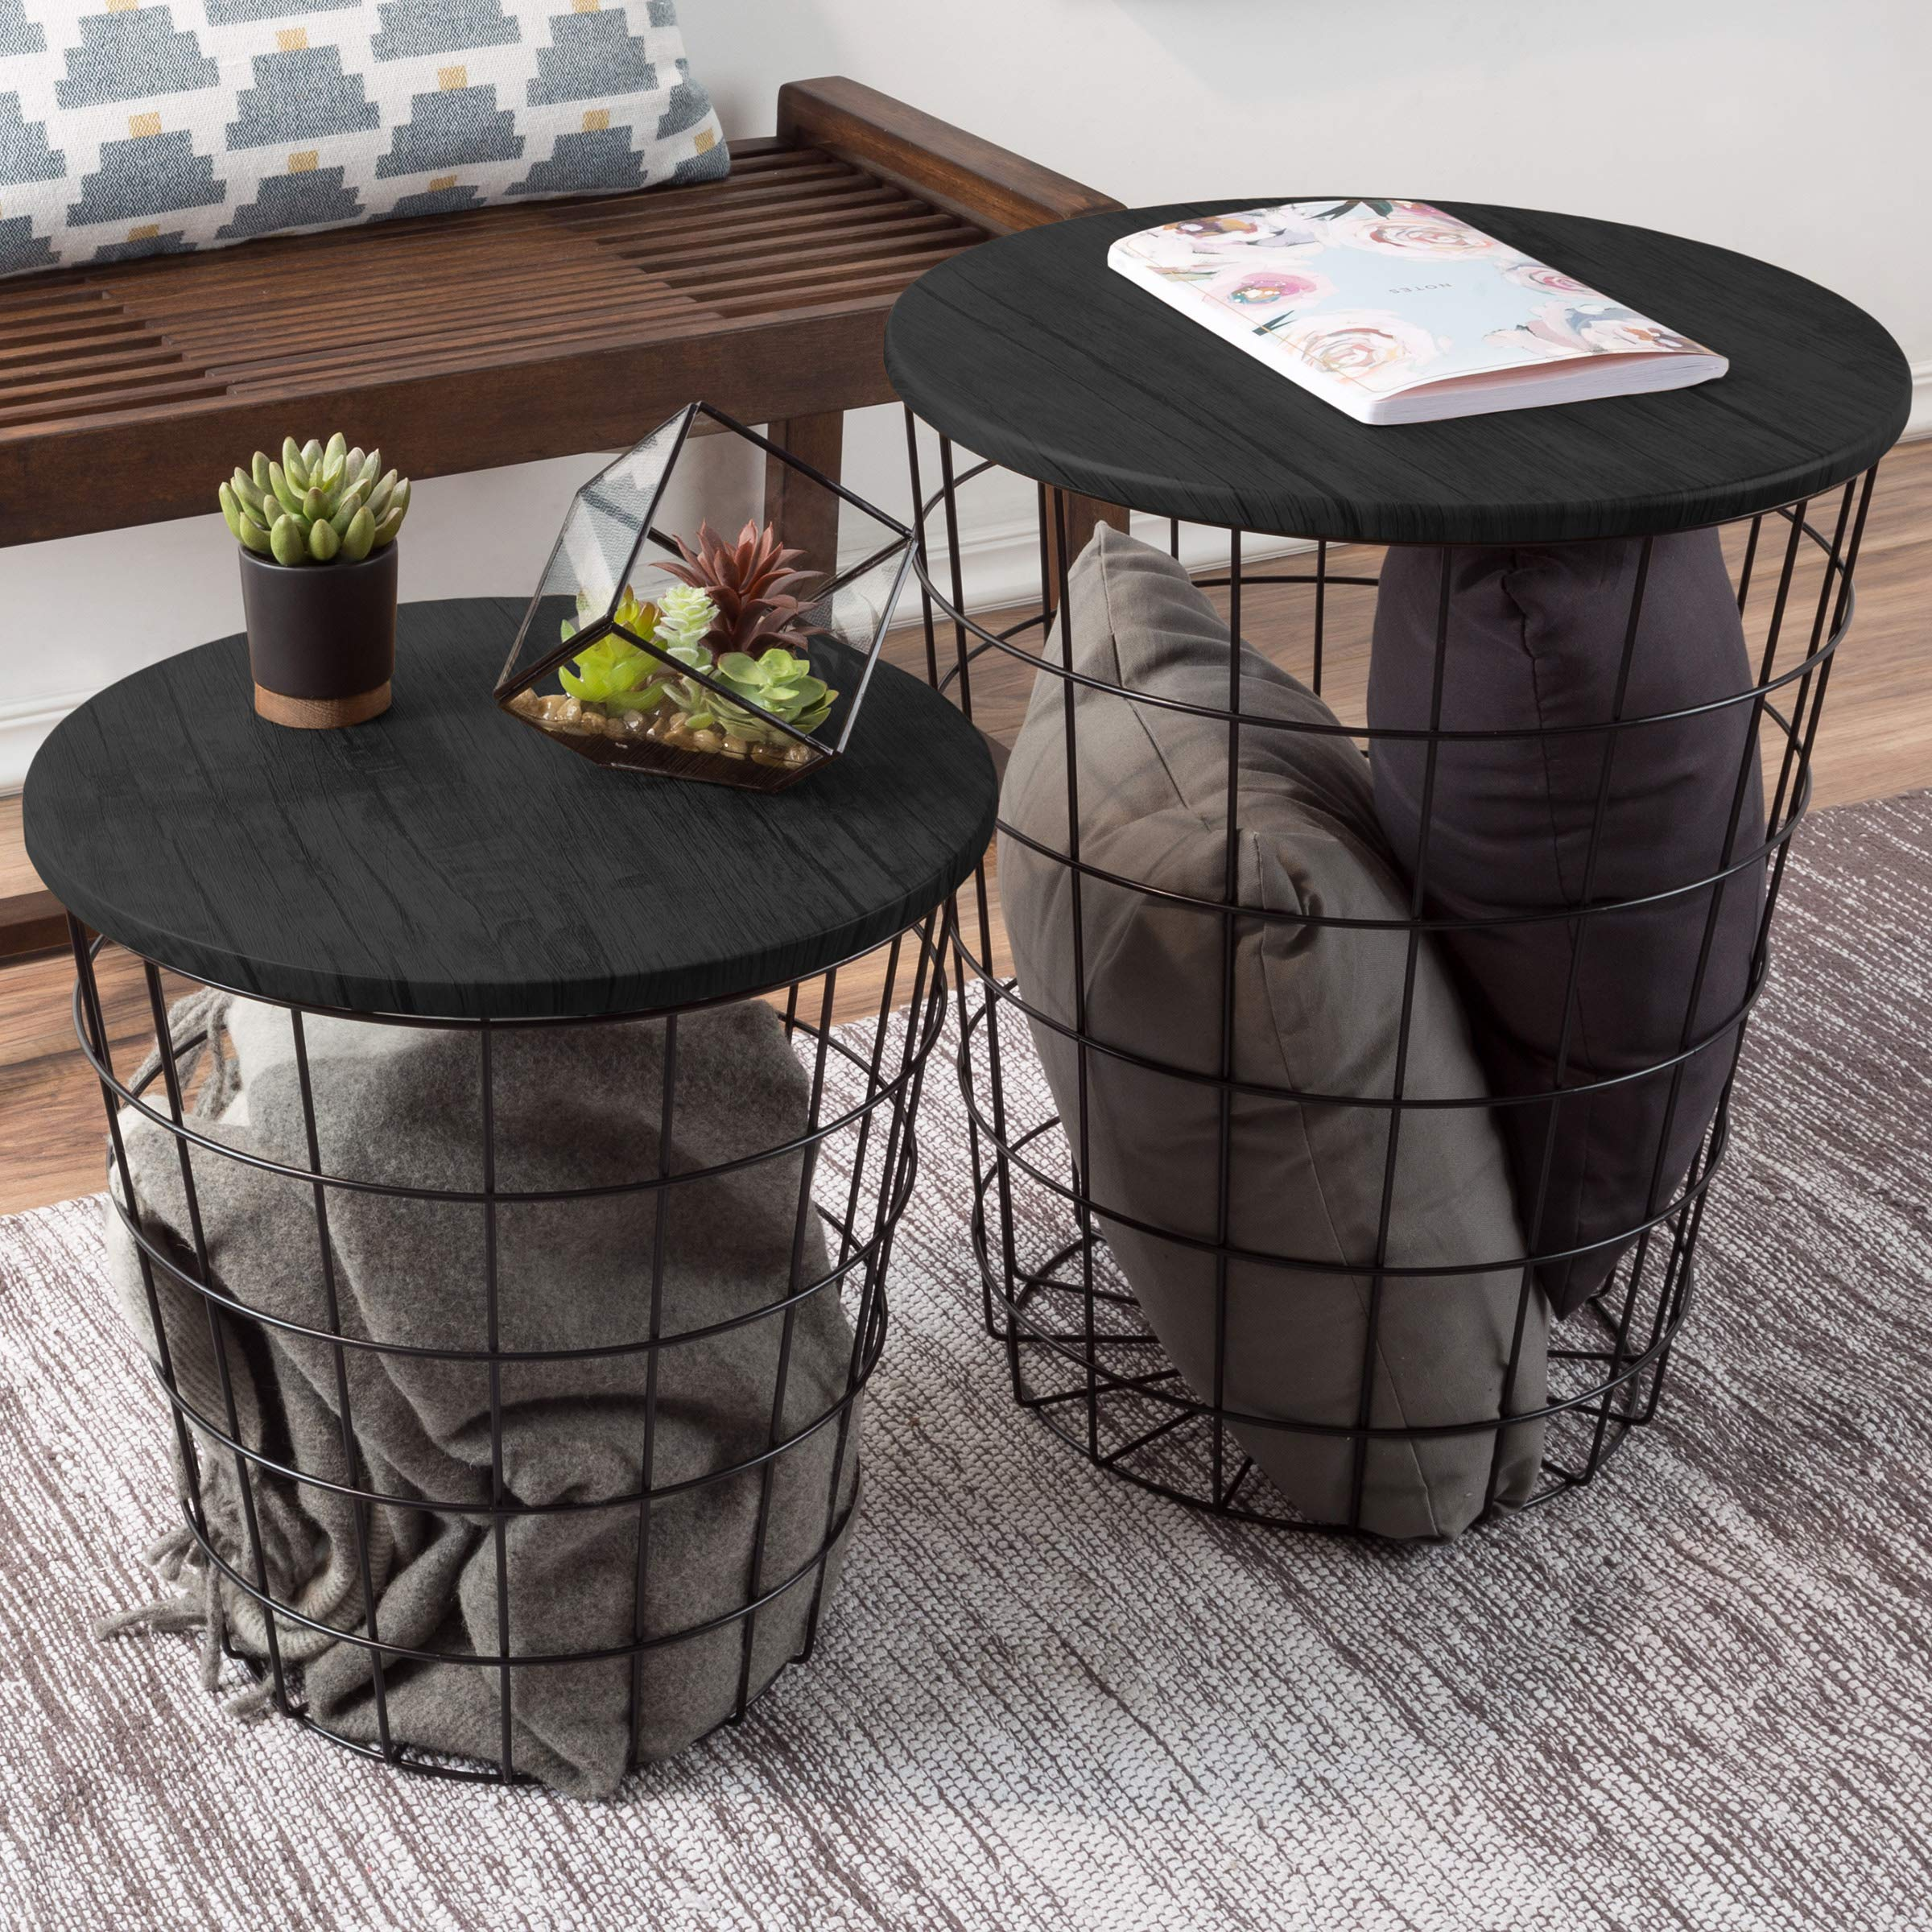 Lavish Home Nesting End Tables with Storage (Black) by Lavish Home